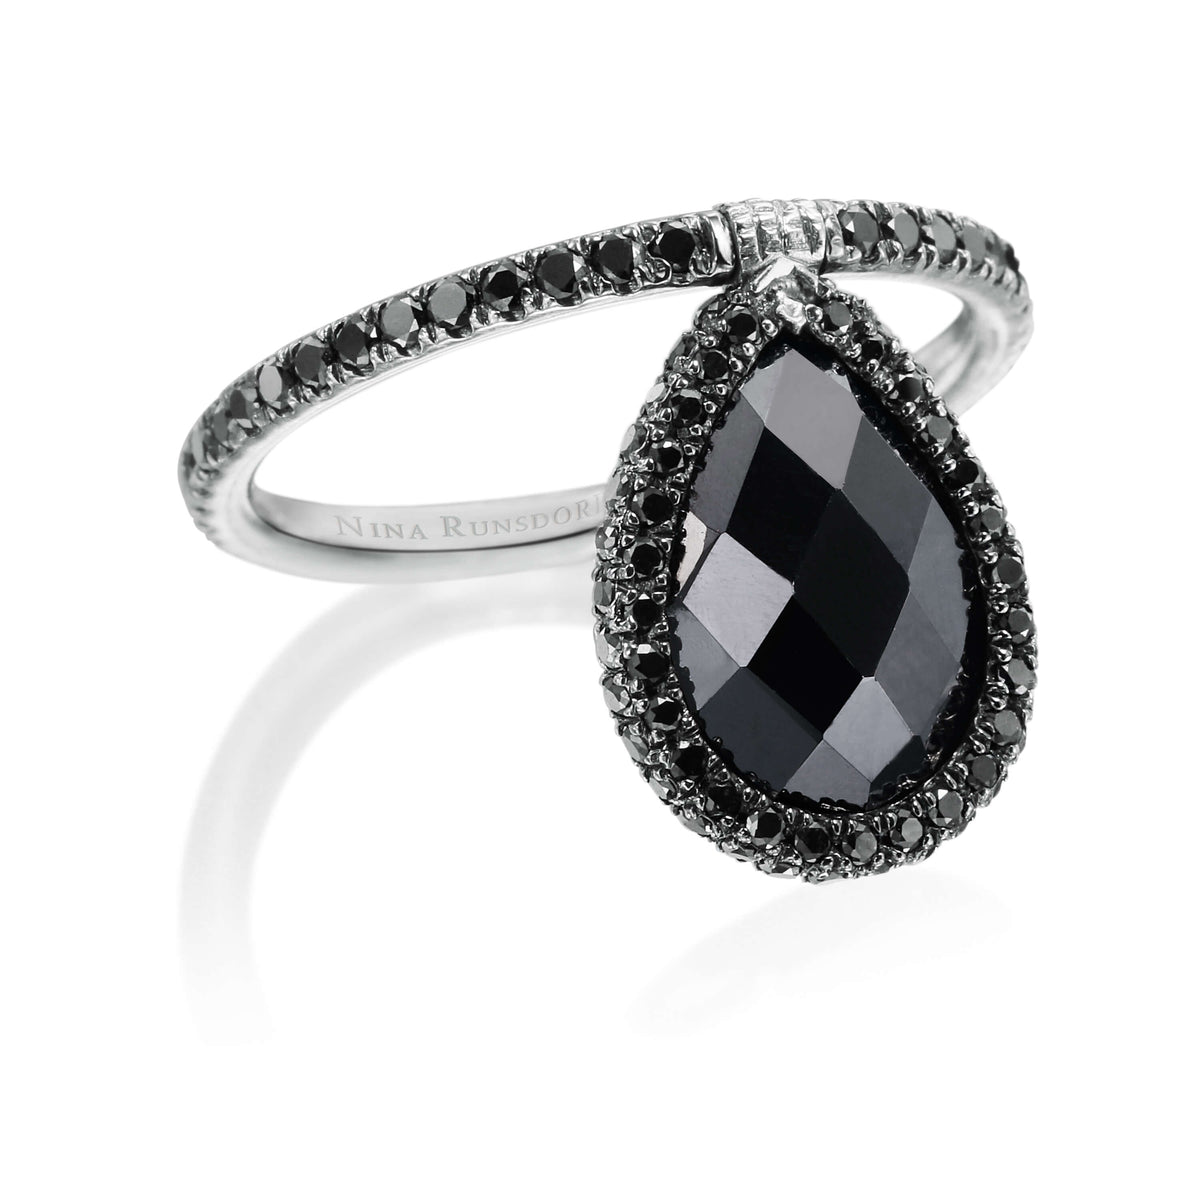 Medium Black Spinel Flip Ring - Nina Runsdorf